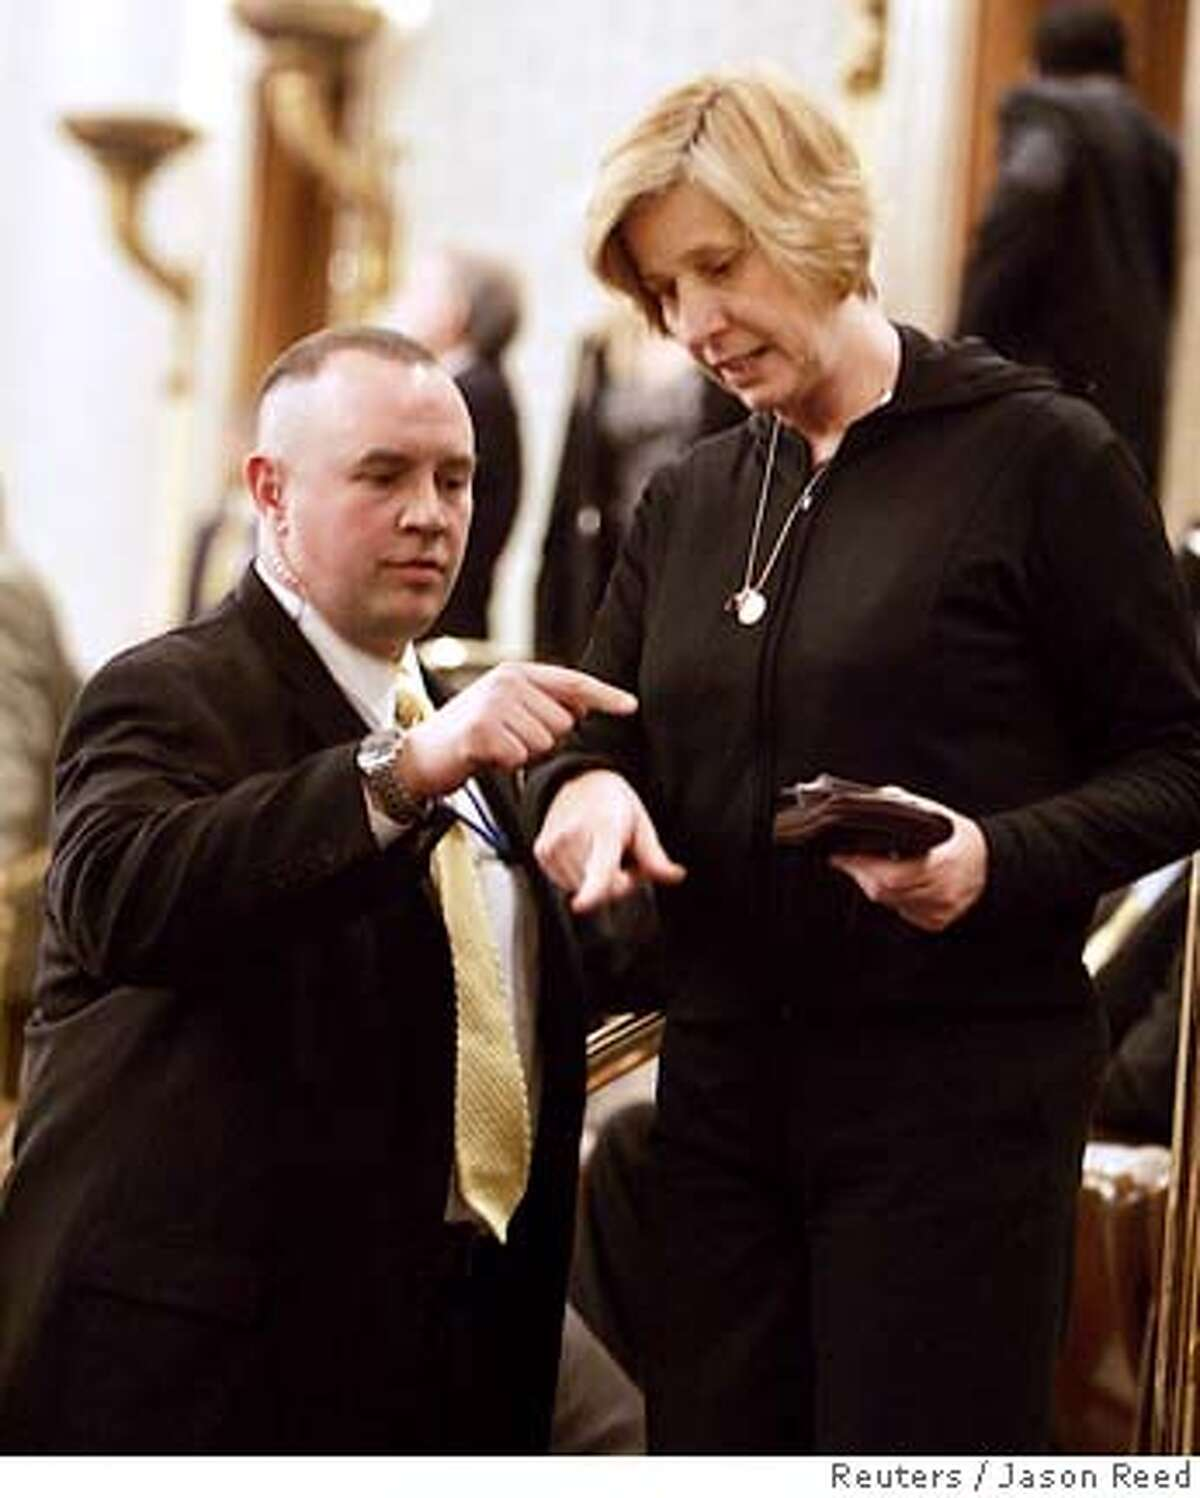 Anti-war protester Cindy Sheehan, whose son was killed serving as a U.S. serviceman in Iraq, talks with security personnel in the U.S. House of Representatives chamber after arriving for the State of the Union address by U.S. President George W. Bush on Capitol Hill in Washington January 31, 2006. Sheehan was escorted back out of the chamber a short time later and there were unconfirmed reports that she had been arrested. REUTERS/Jason Reed